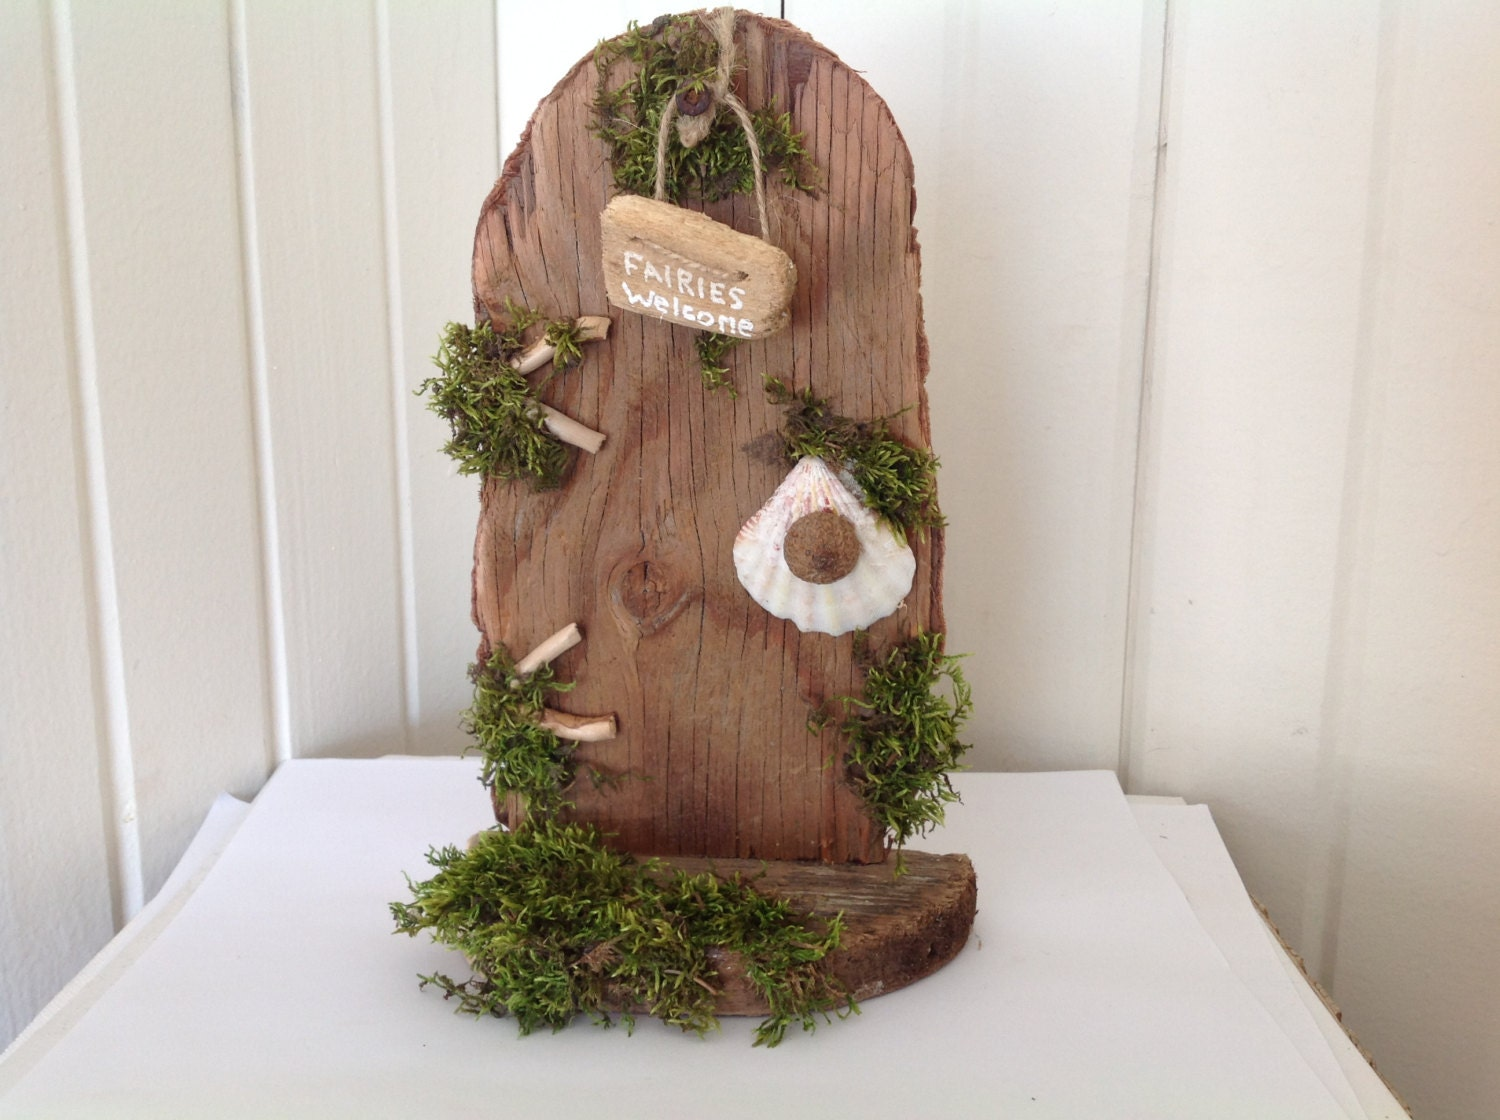 Fairy garden door fairy houses indoor gardens fairy for Fairy house doors